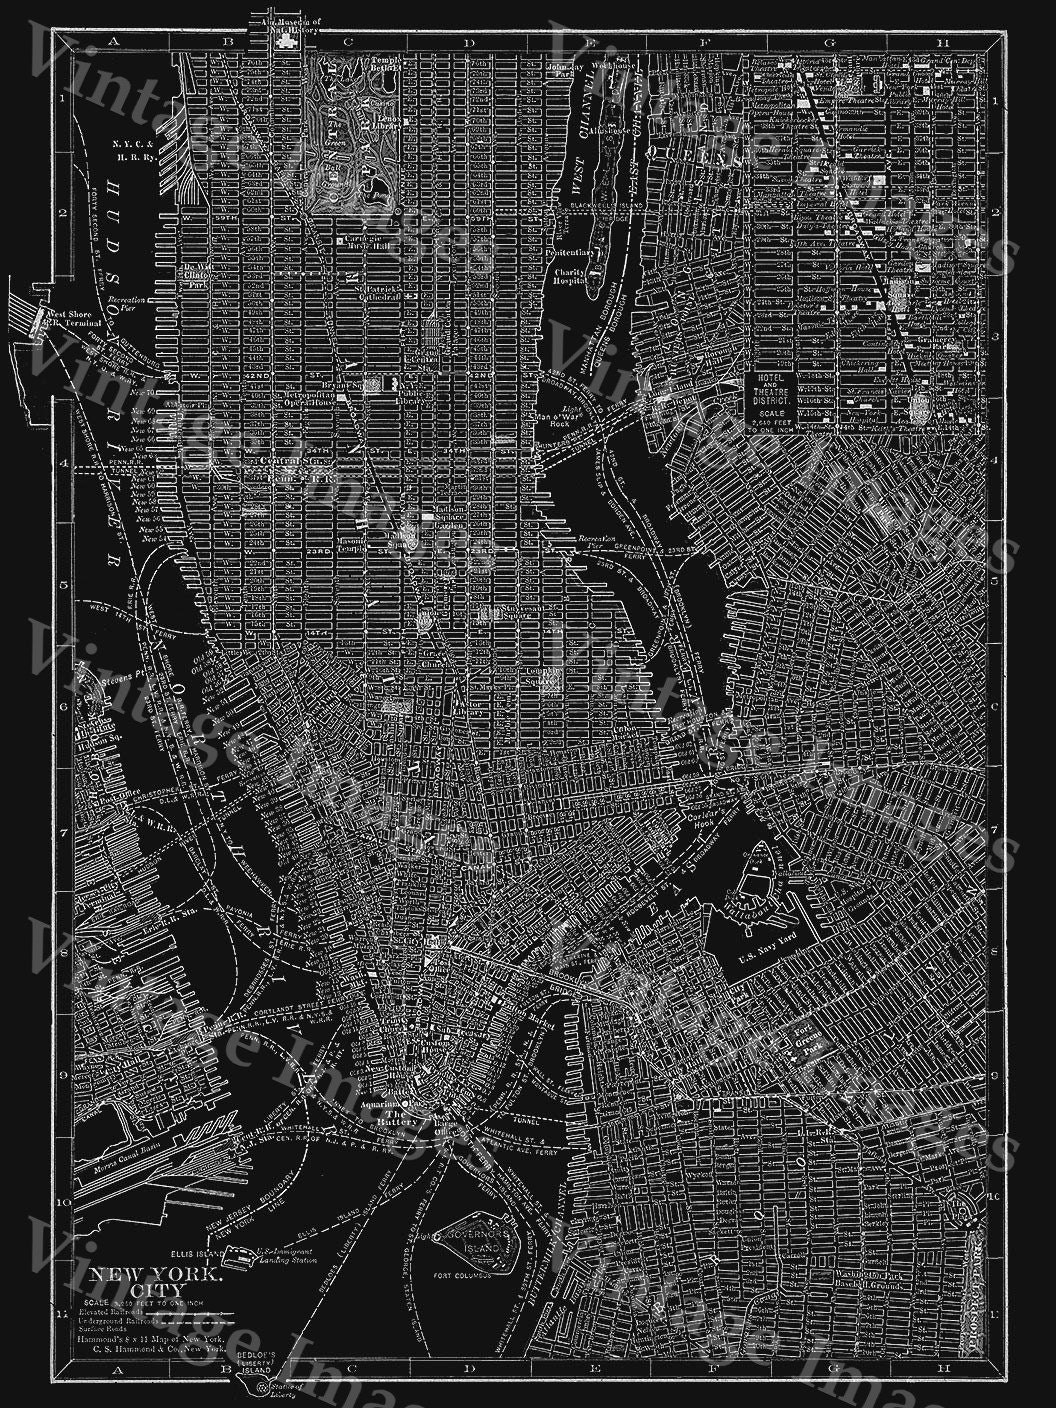 New york city manhattan street map vintage black poster new york new york city manhattan street map vintage black poster new york antique architectural blueprint style giant wall map fine art map print malvernweather Image collections